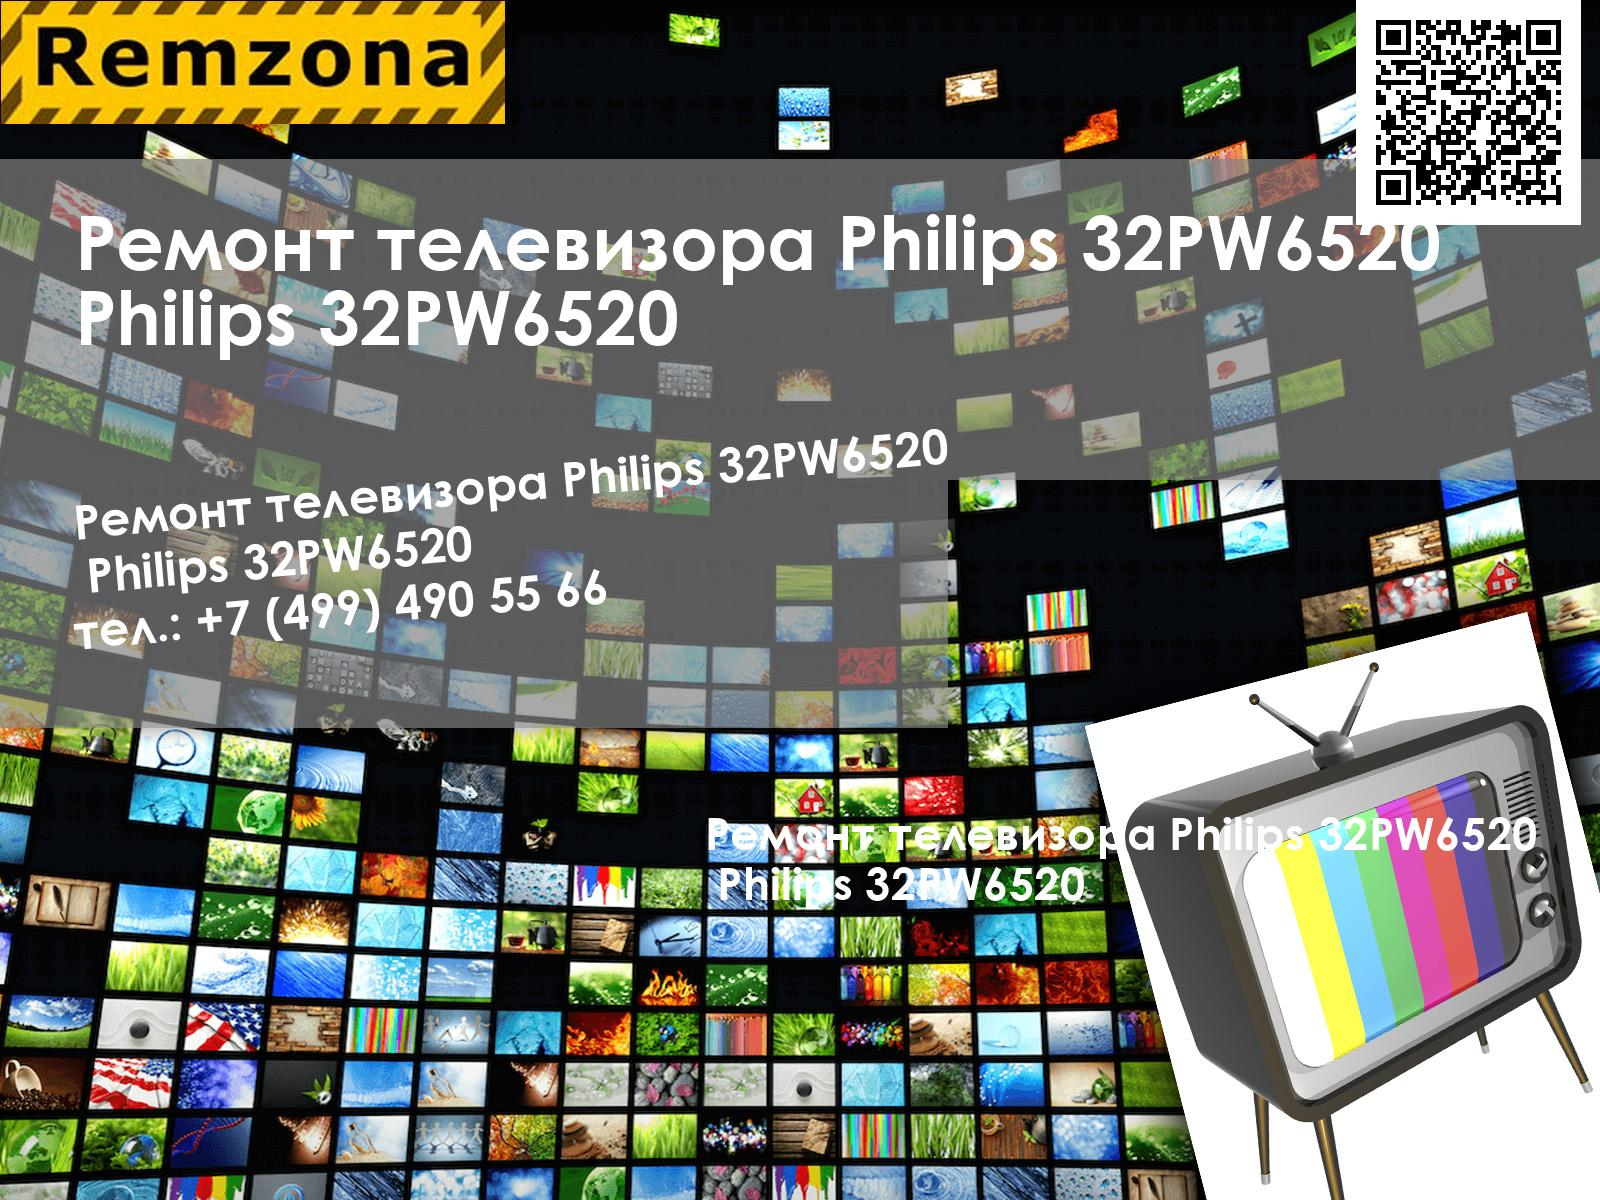 Ремонт телевизора Philips 32PW6520